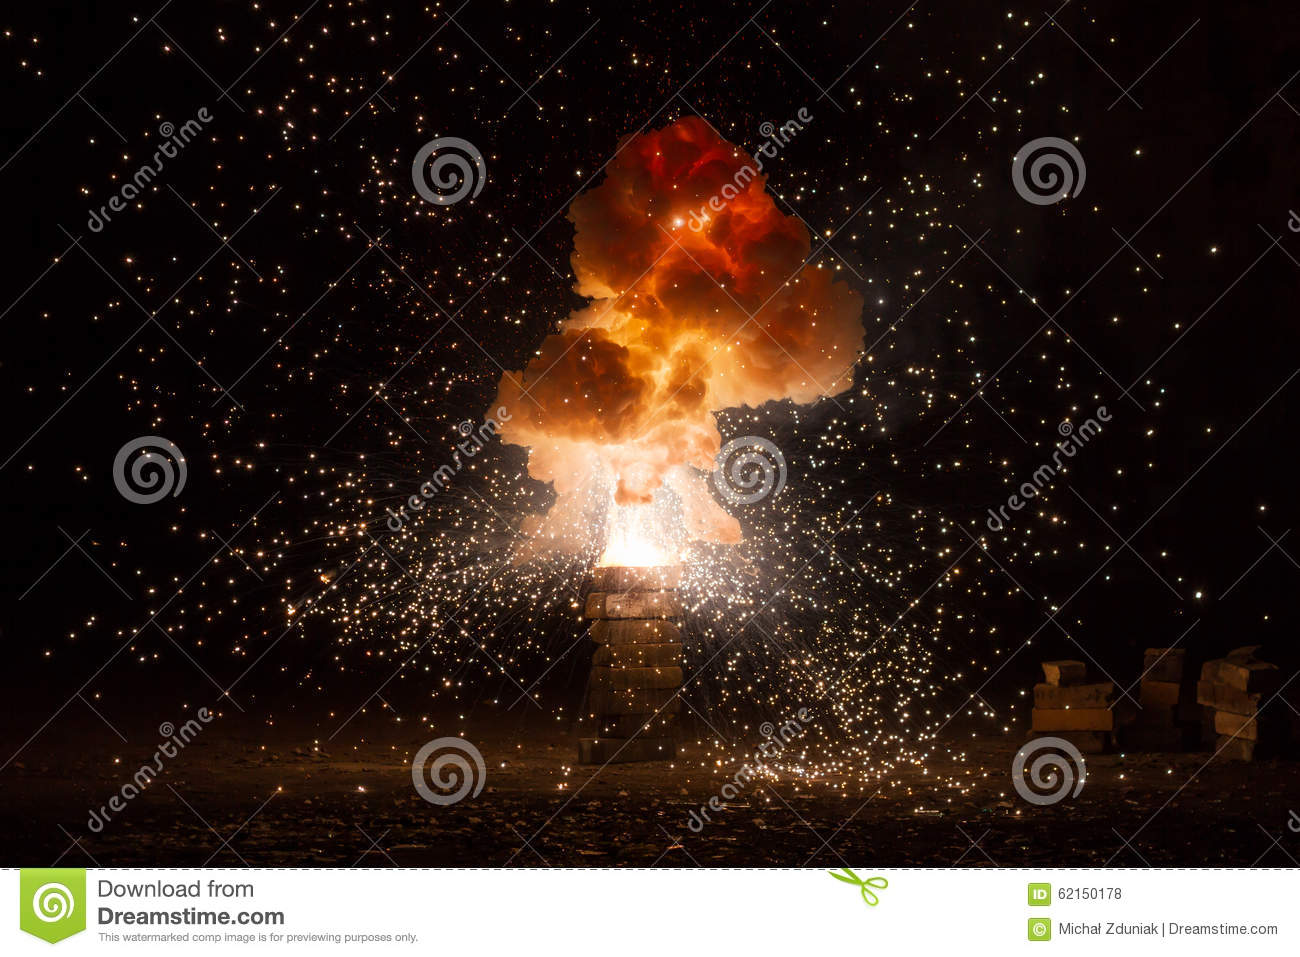 Realistic fiery explosion busting